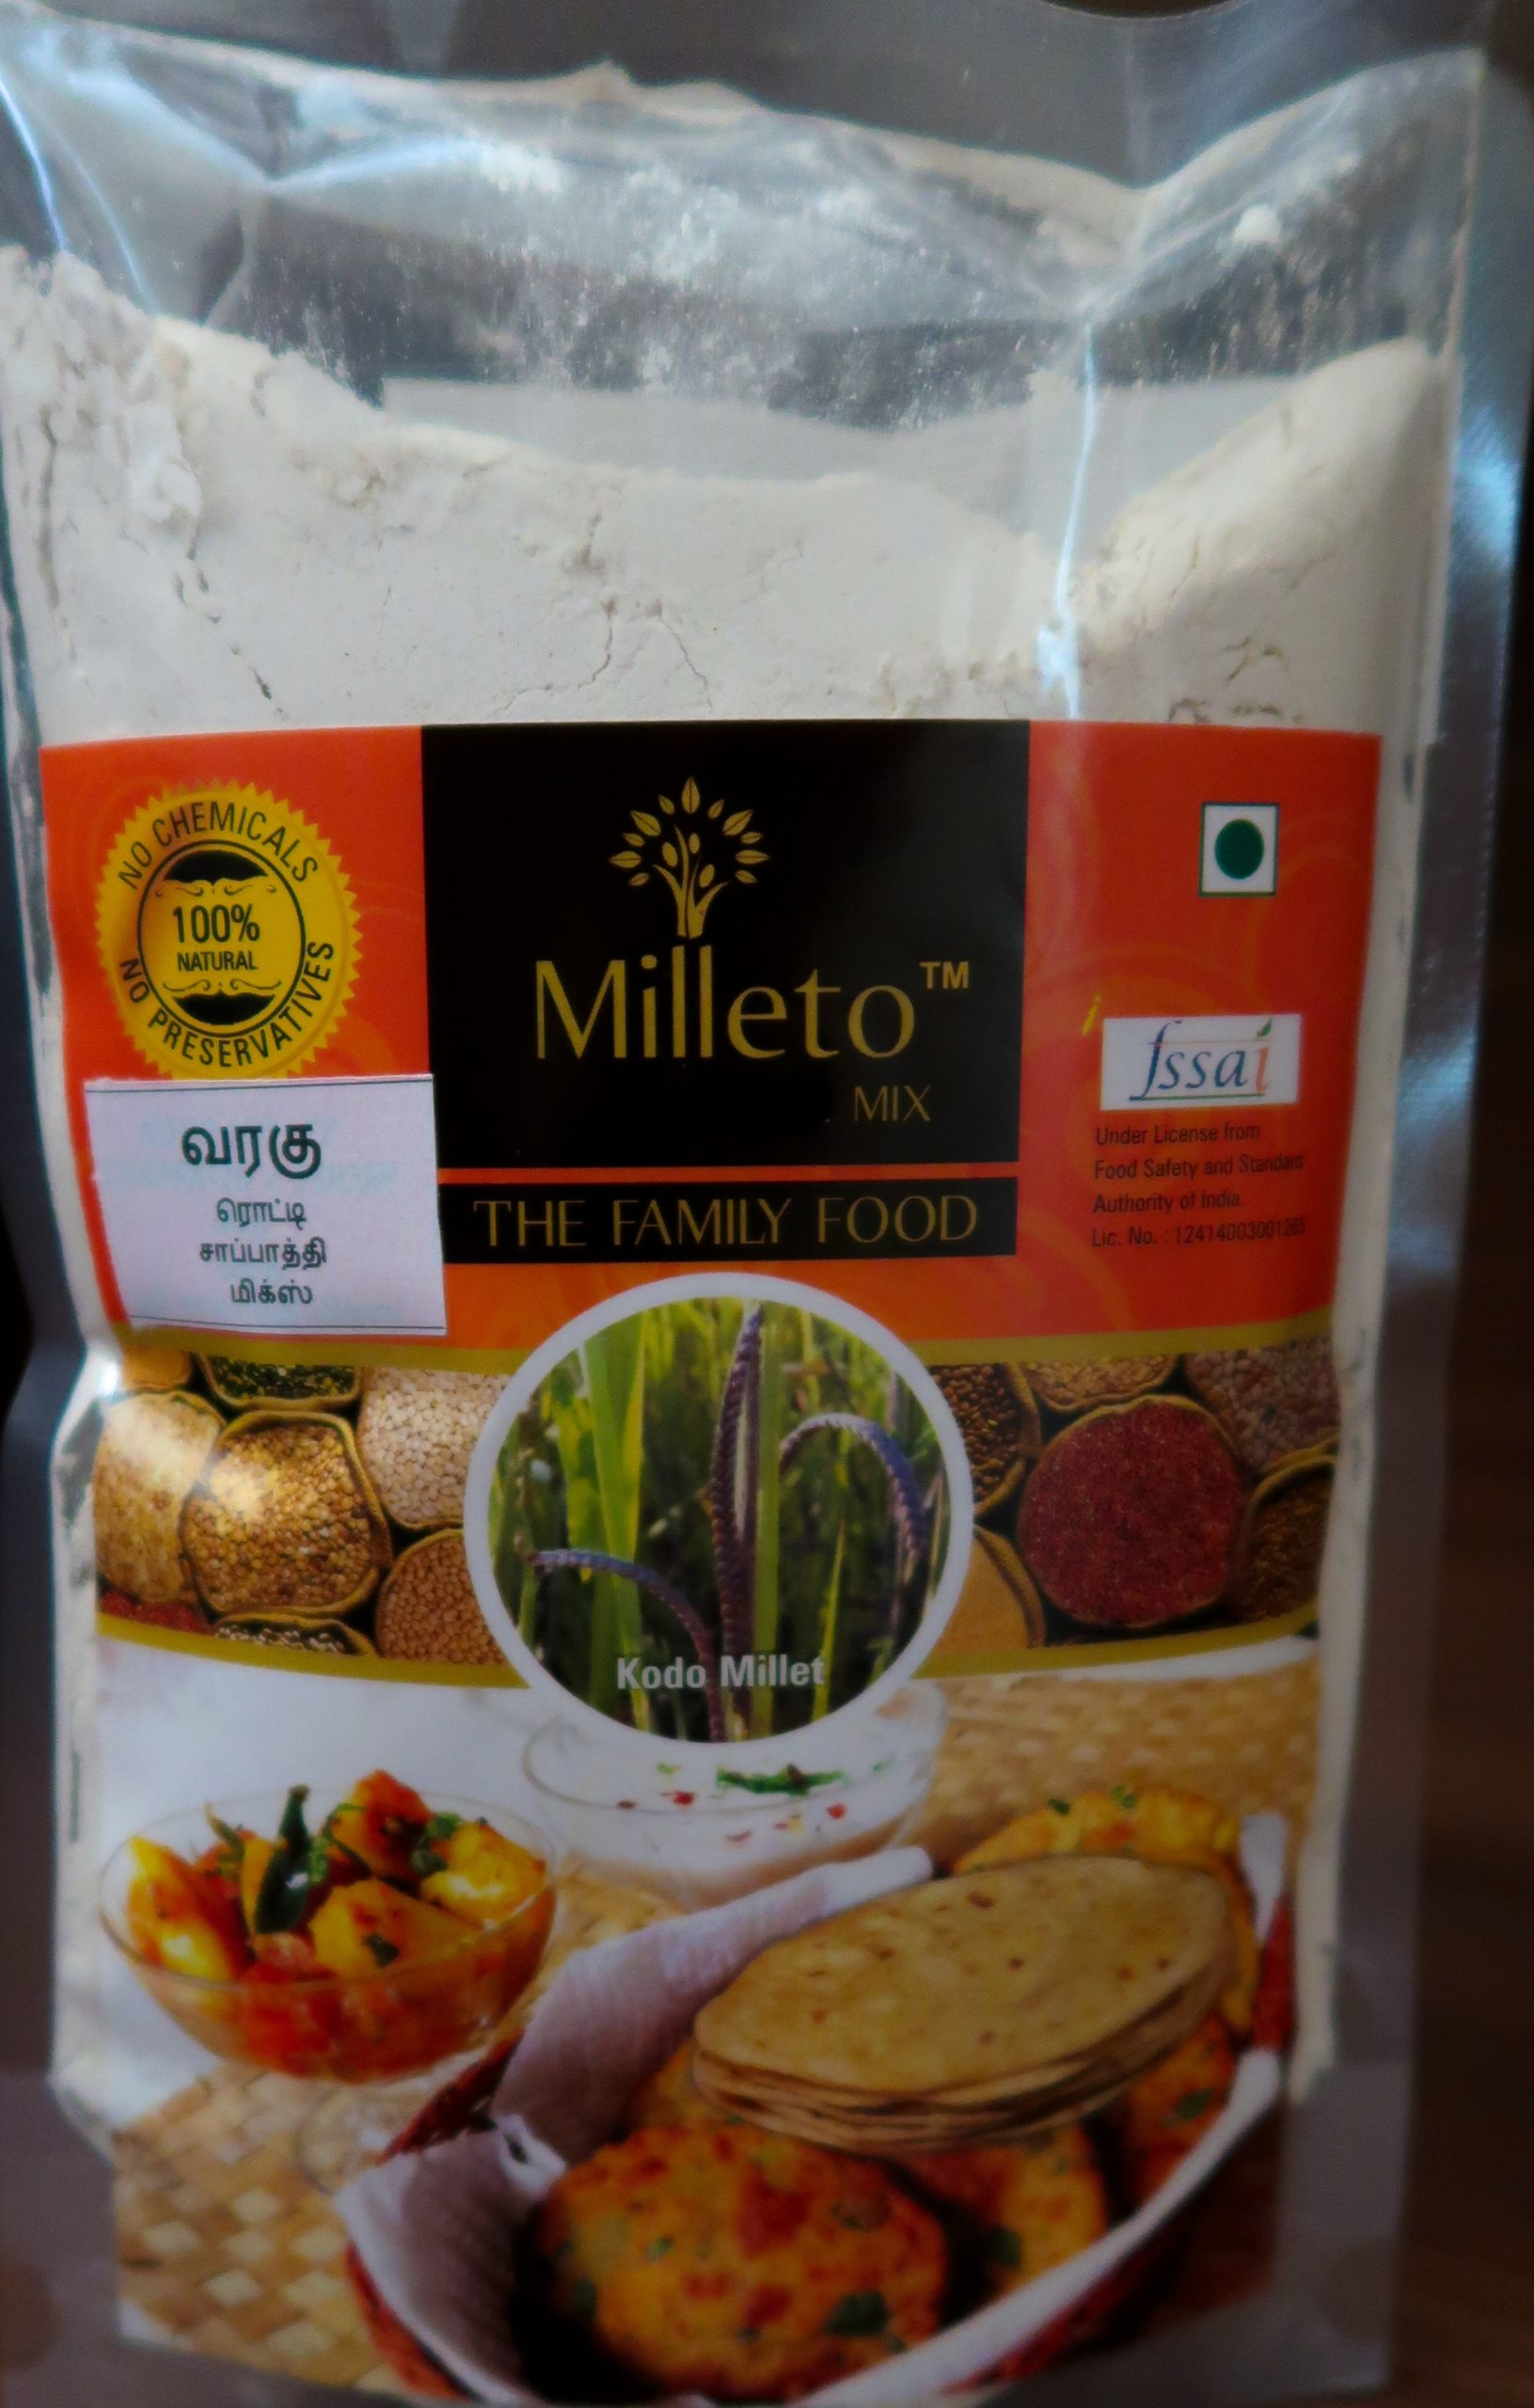 Kodo Millet Chapati Mix by Milleto, Adhisurya Foods